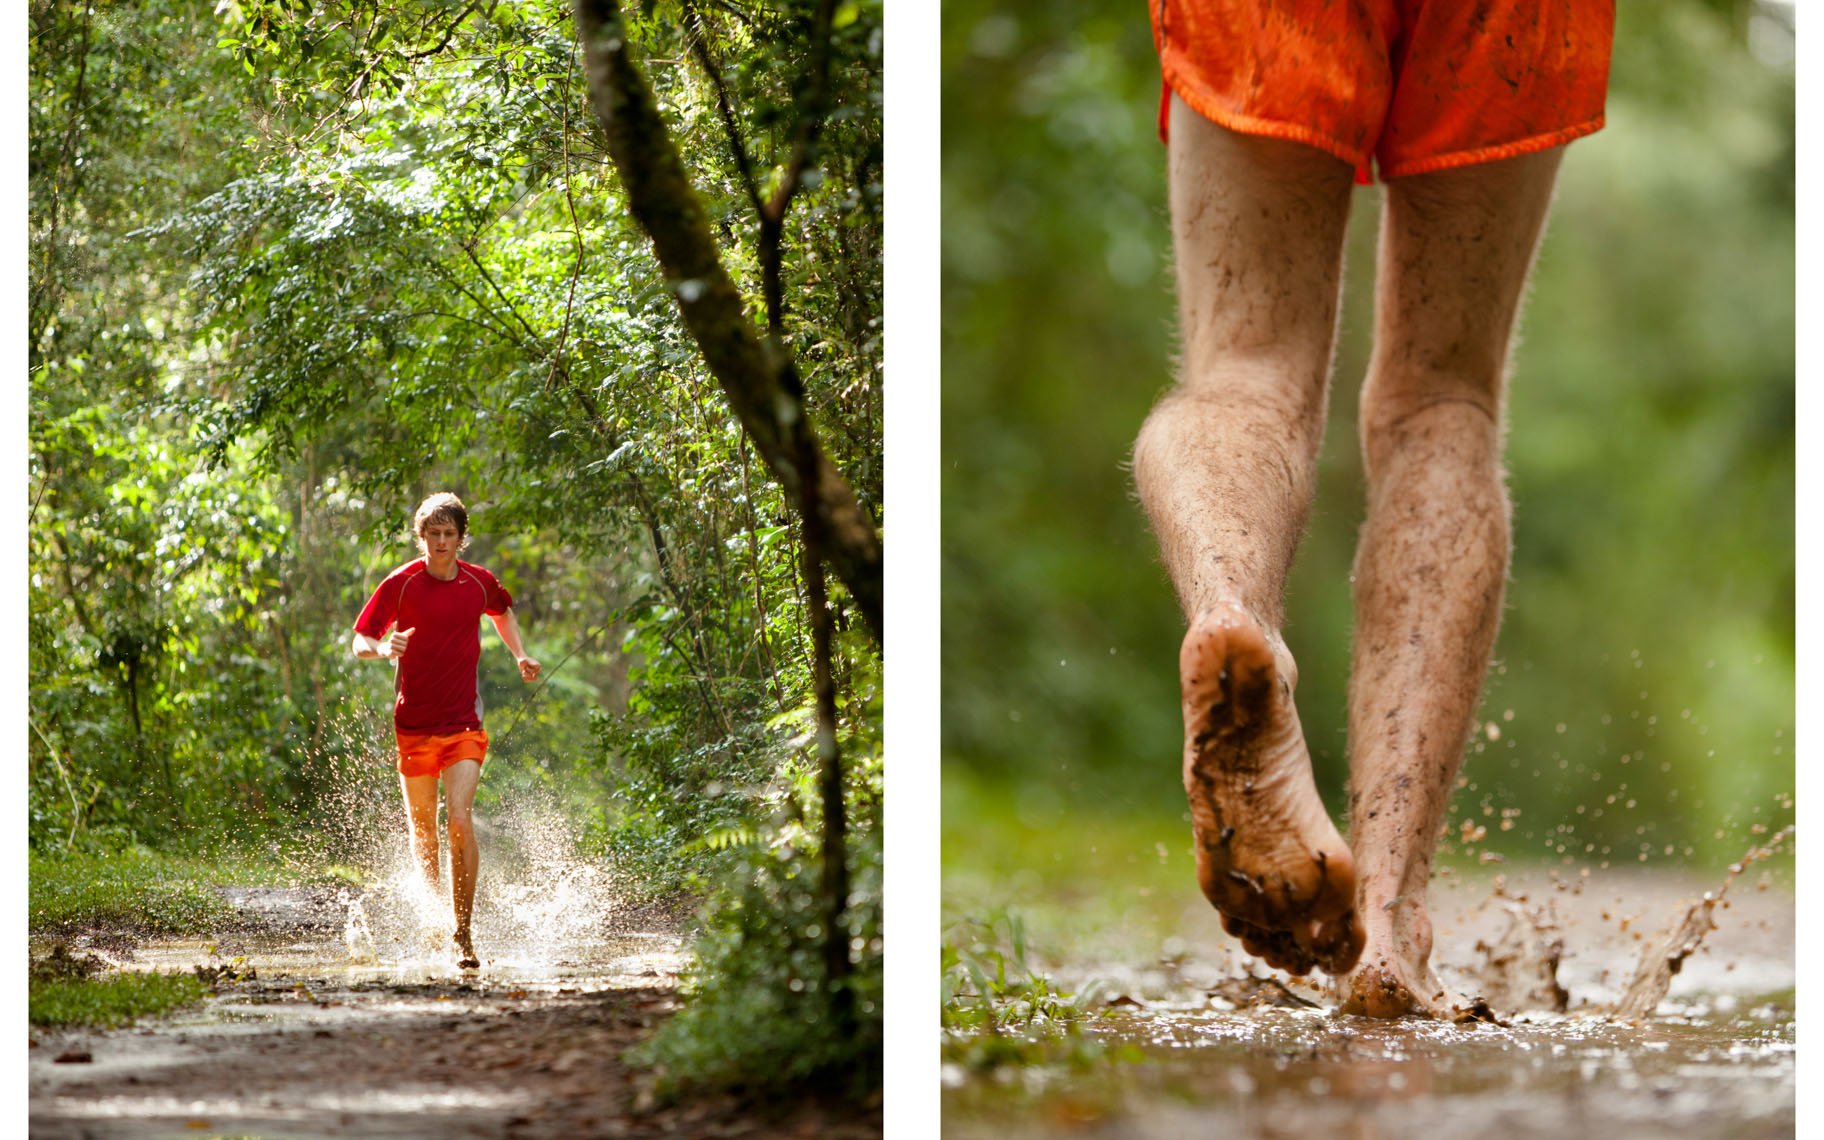 Adventure and outdoor lifestyle photogaph by Forest Woodward running barefoot on muddy trails in Brazil